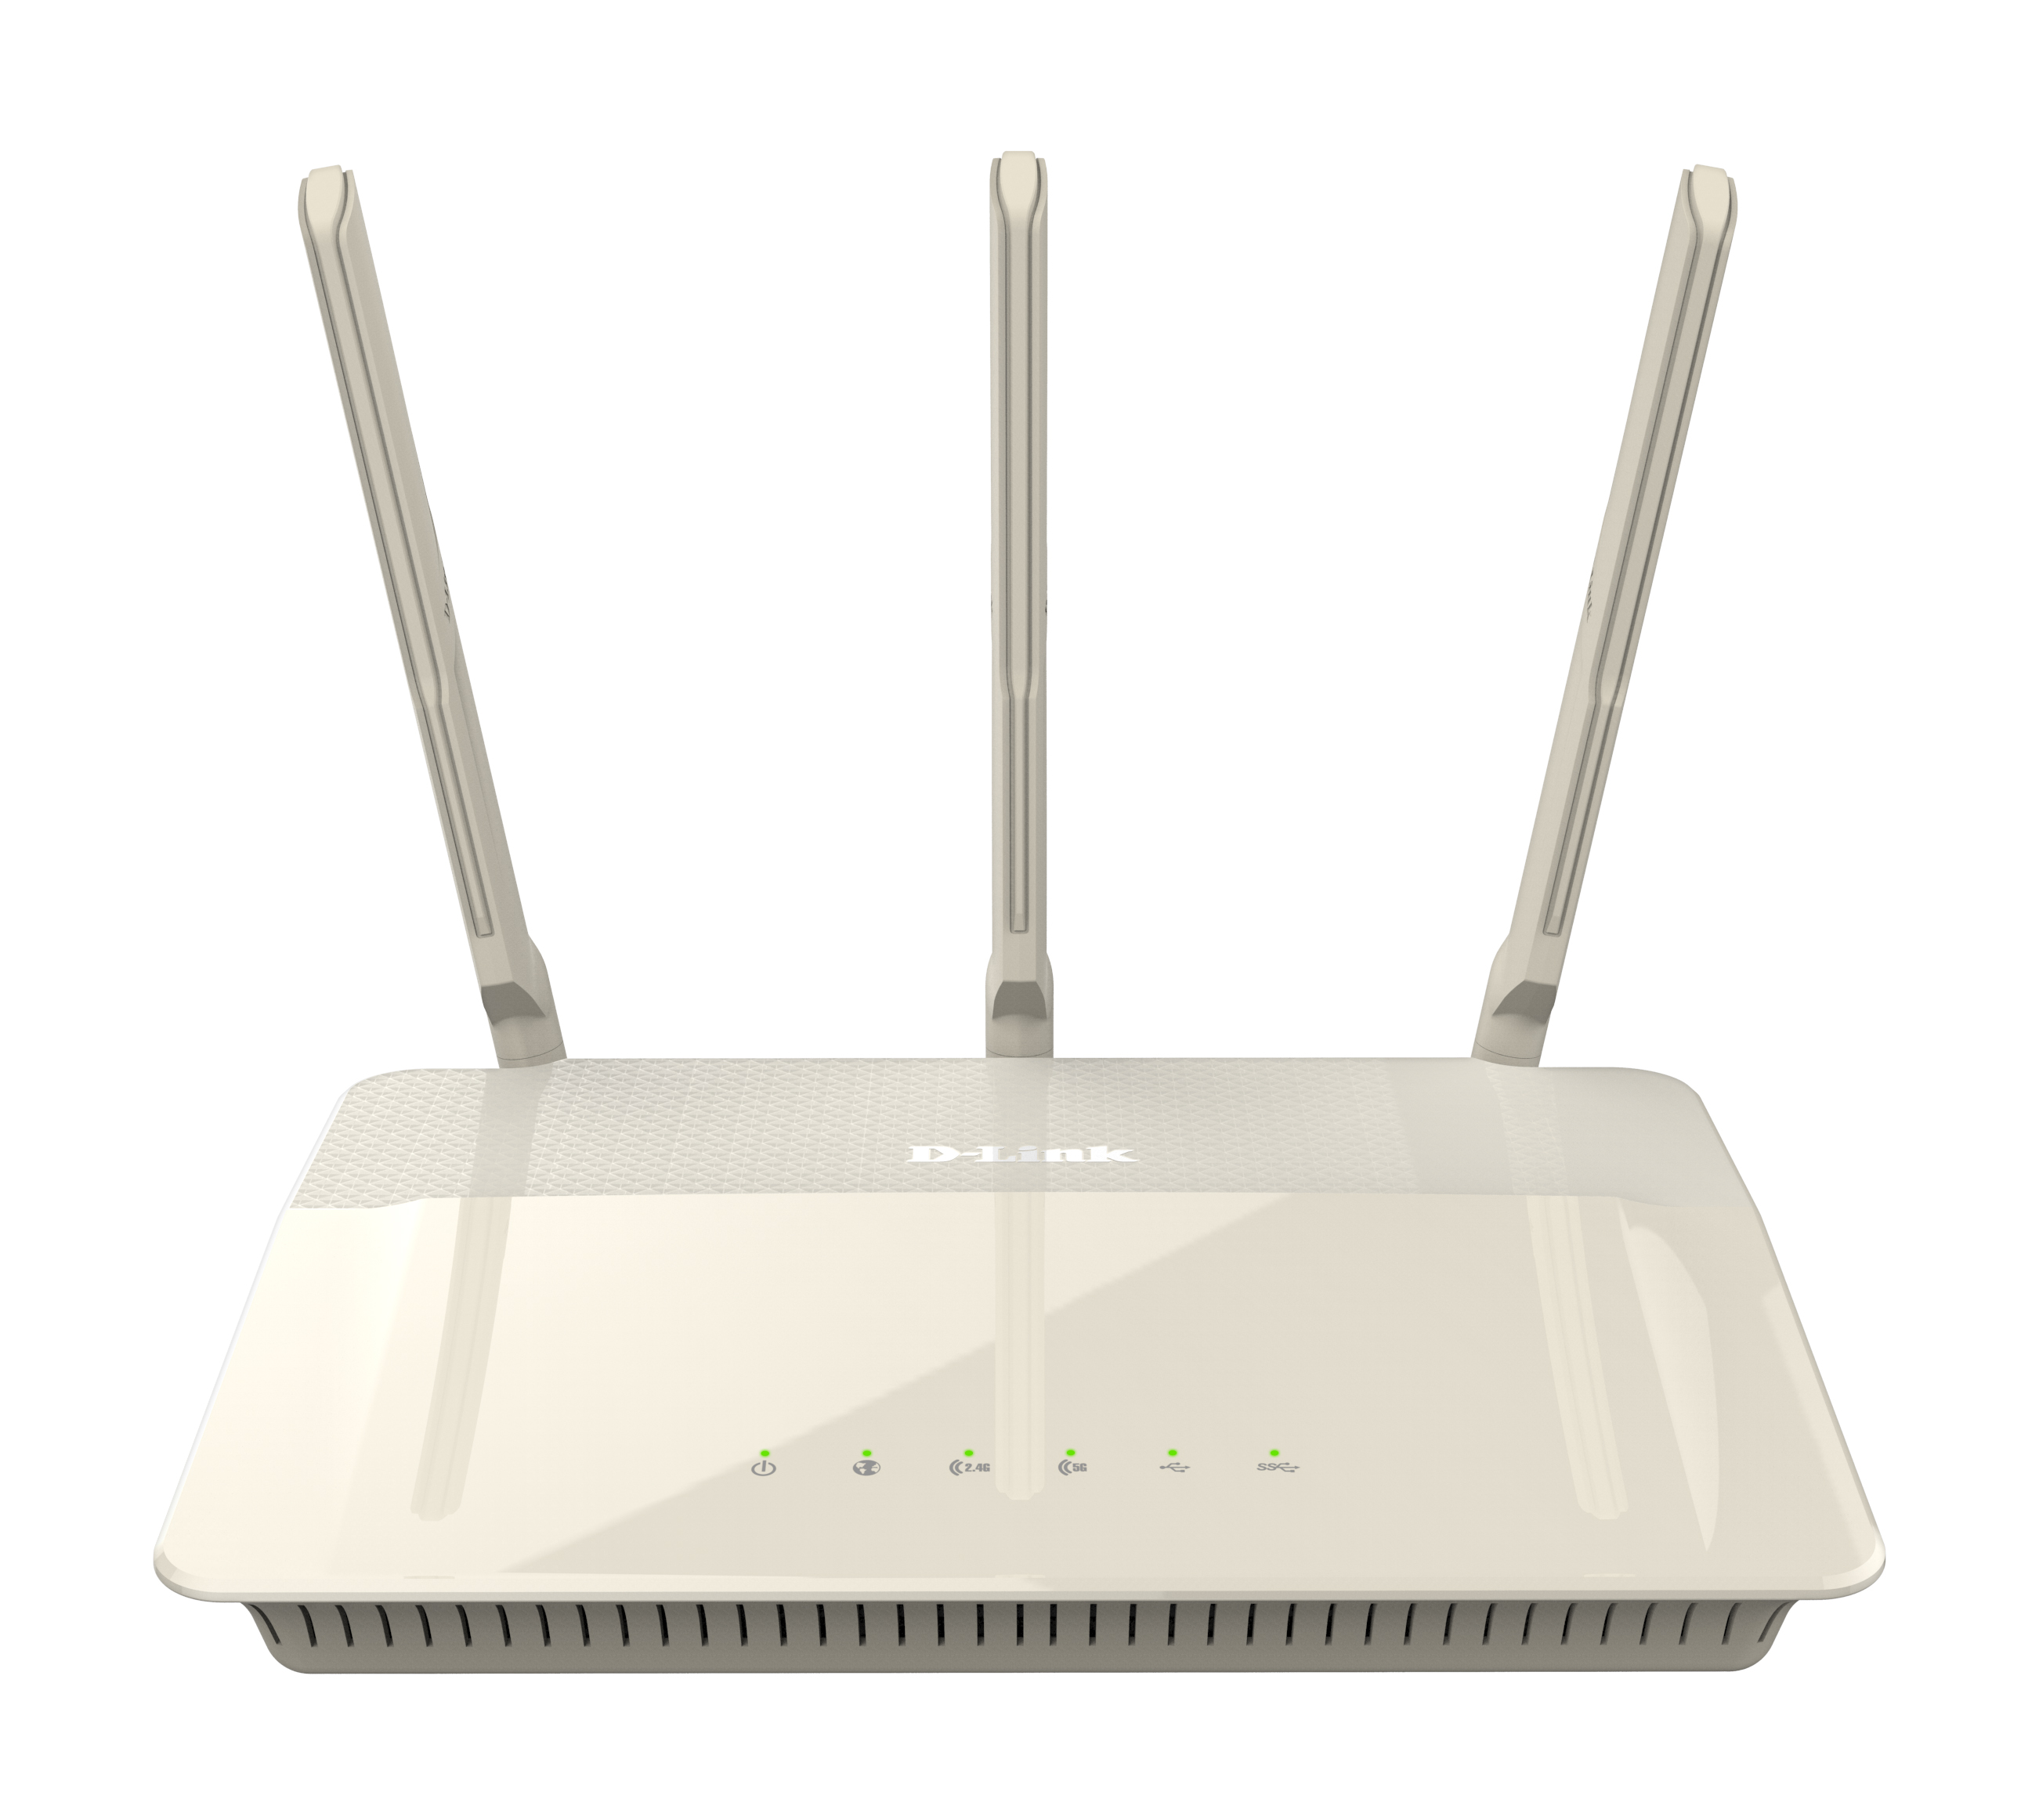 Wireless Router Dir-880 Ac1900 Dual-band Gigabit With Advanced Ac Smartbeam